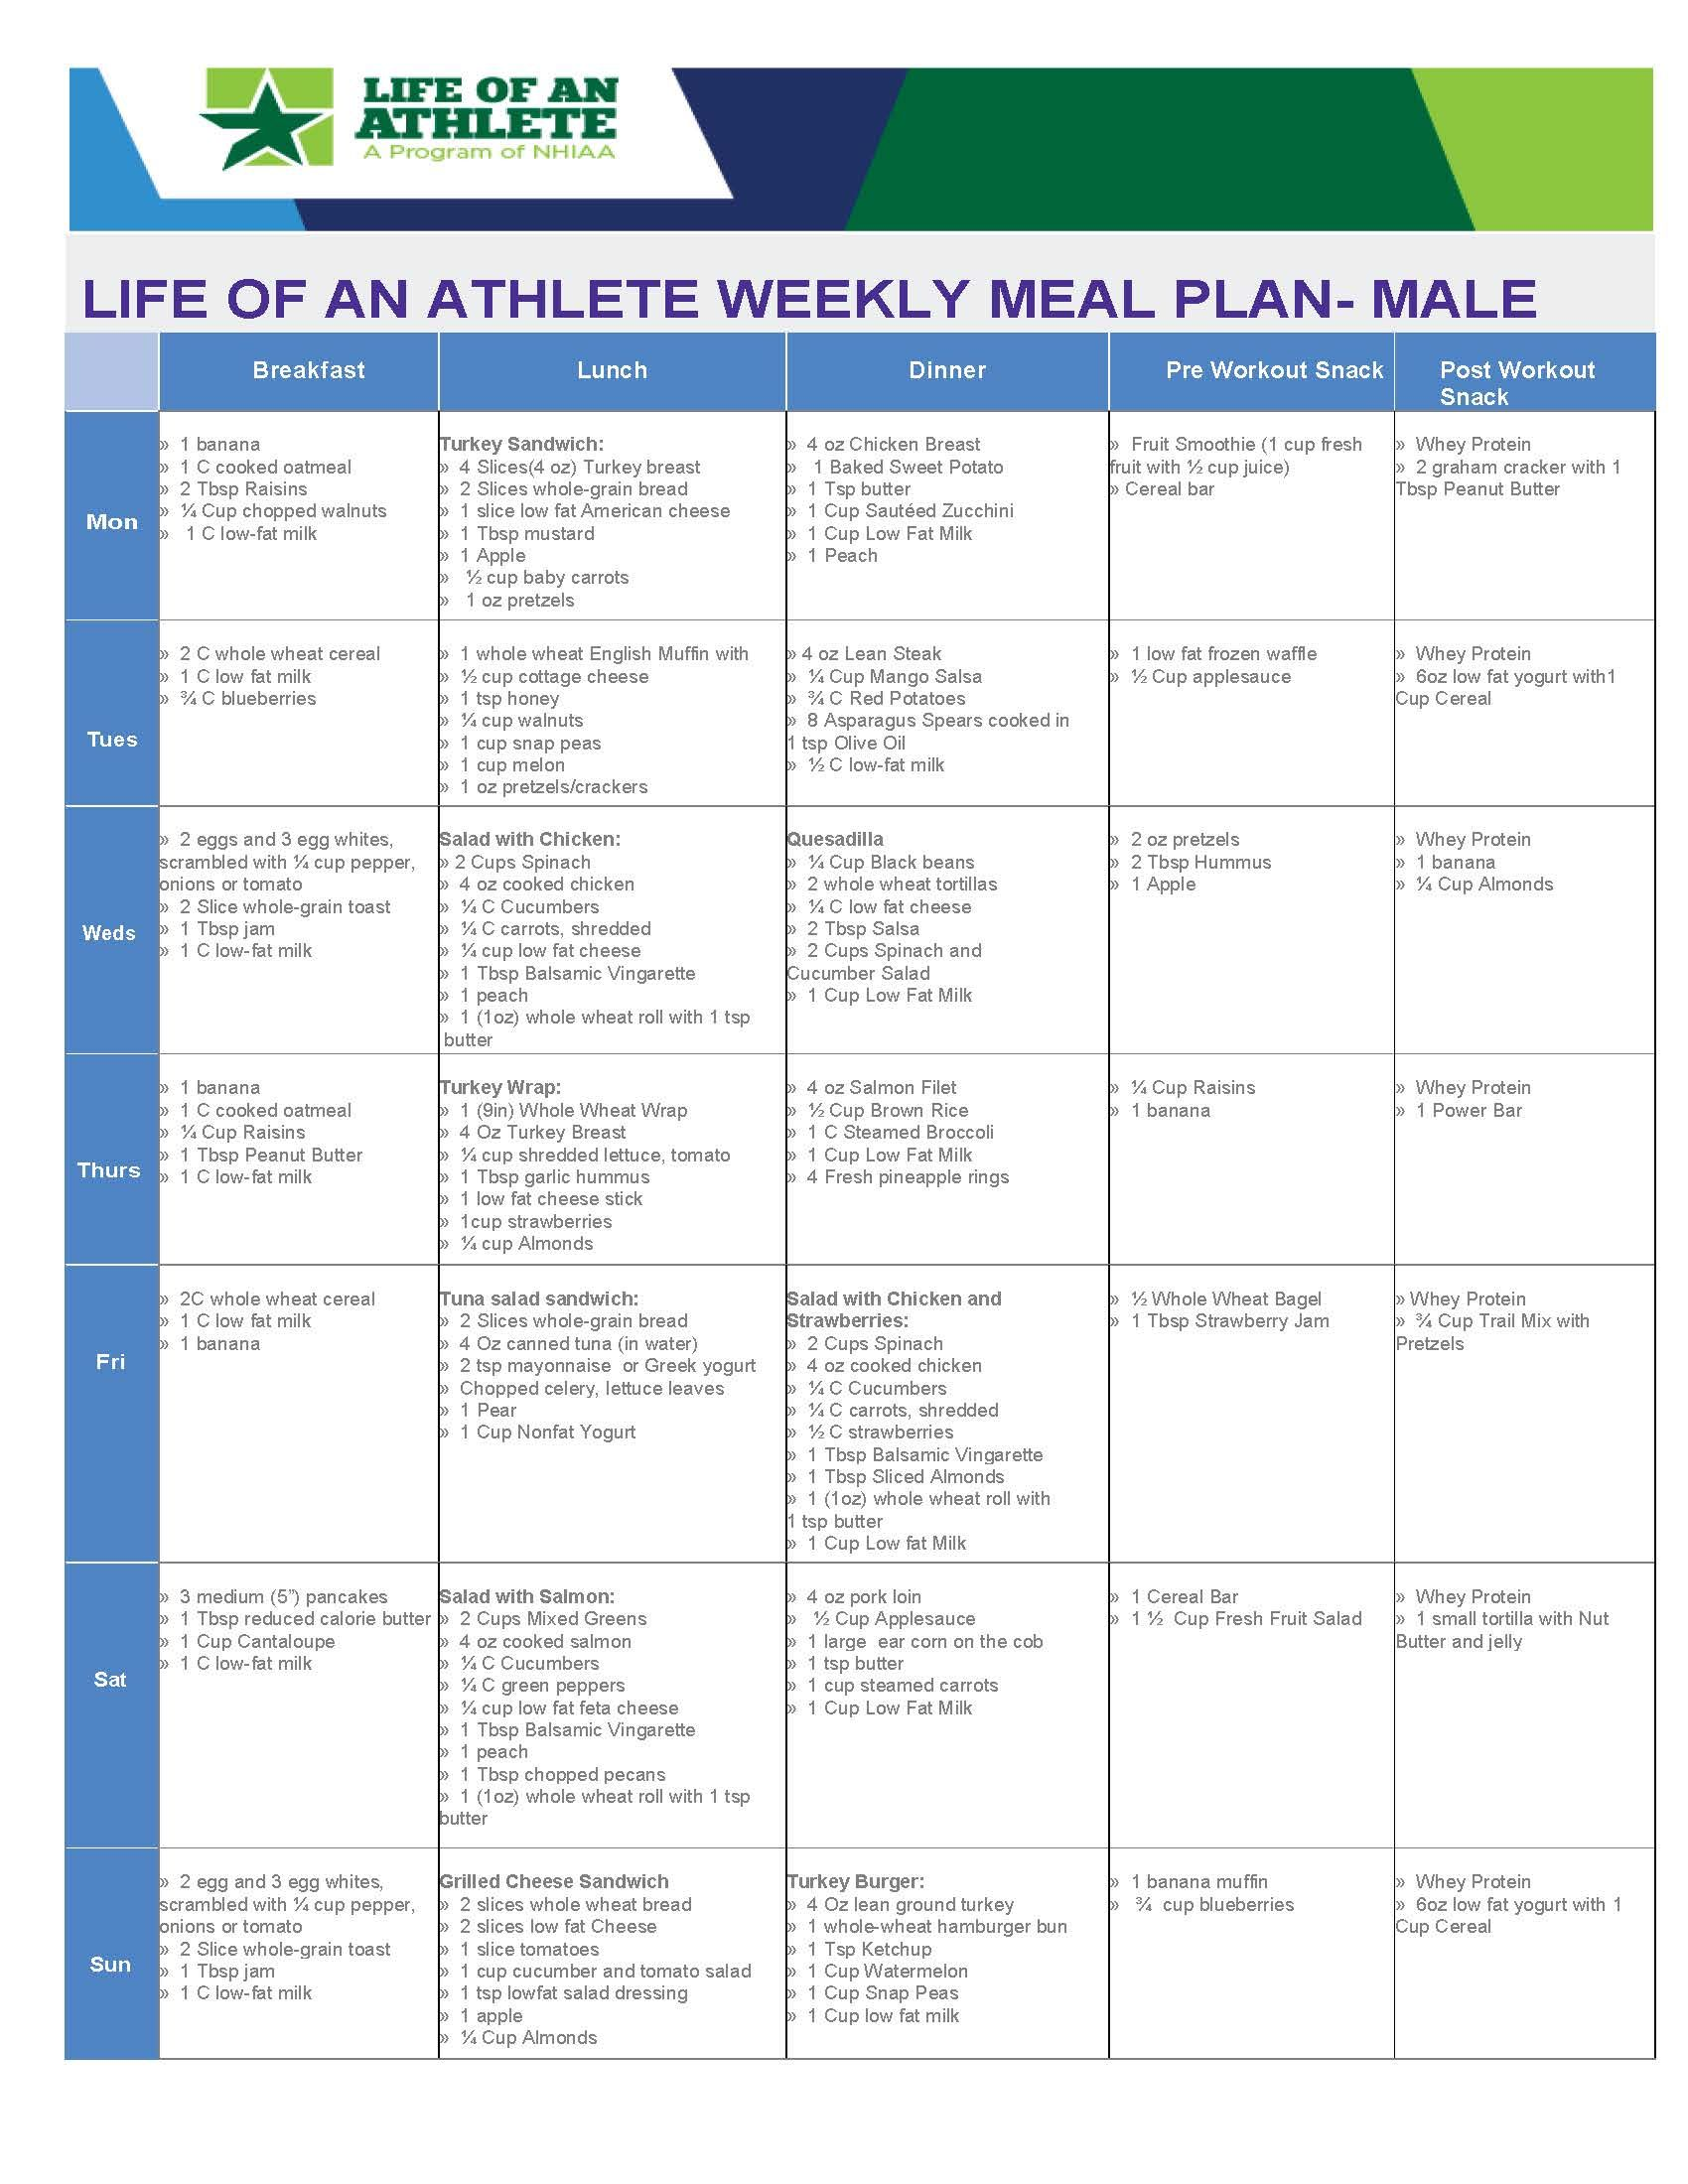 Weekly Meal Plan For A Male Athlete Athlete Meal Plan Week Meal Plan Athlete Nutrition